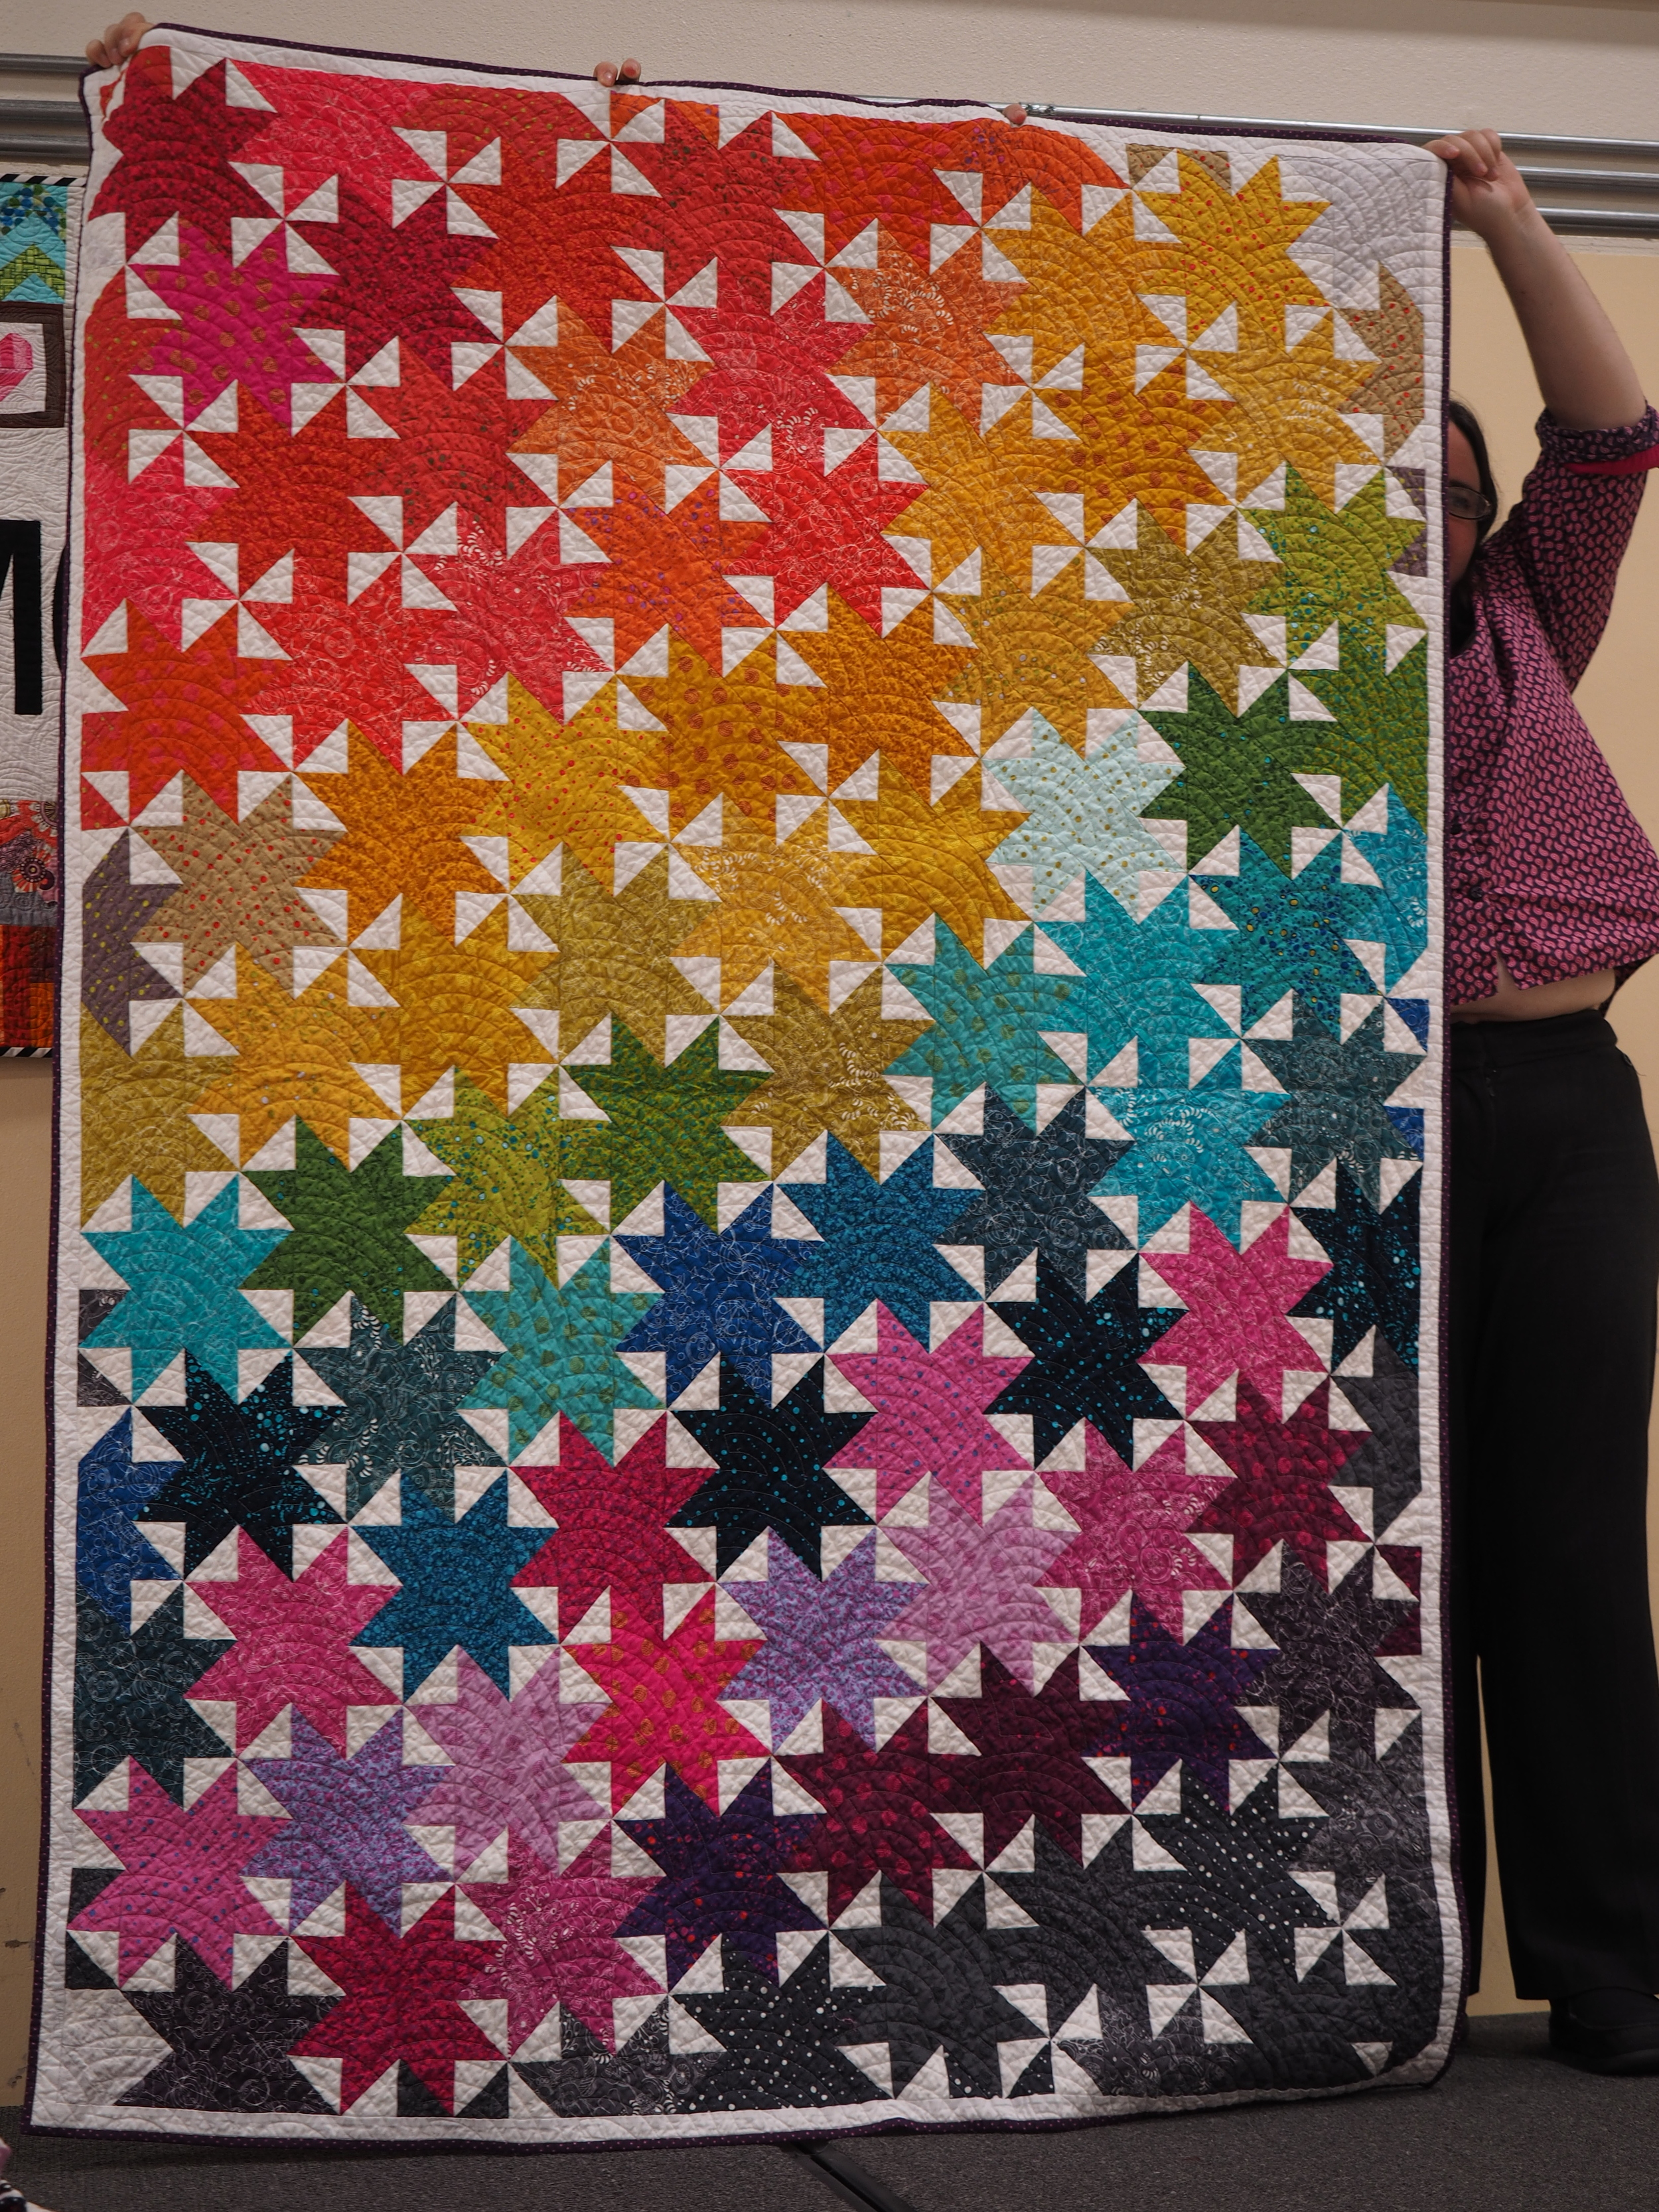 Ruthie Windsong  EpicSun Prints  @ruthiewindsong  My own design of nested stars, I made the first version of this in High School.  Quilted by Karlee Sandell @sewinspired2day